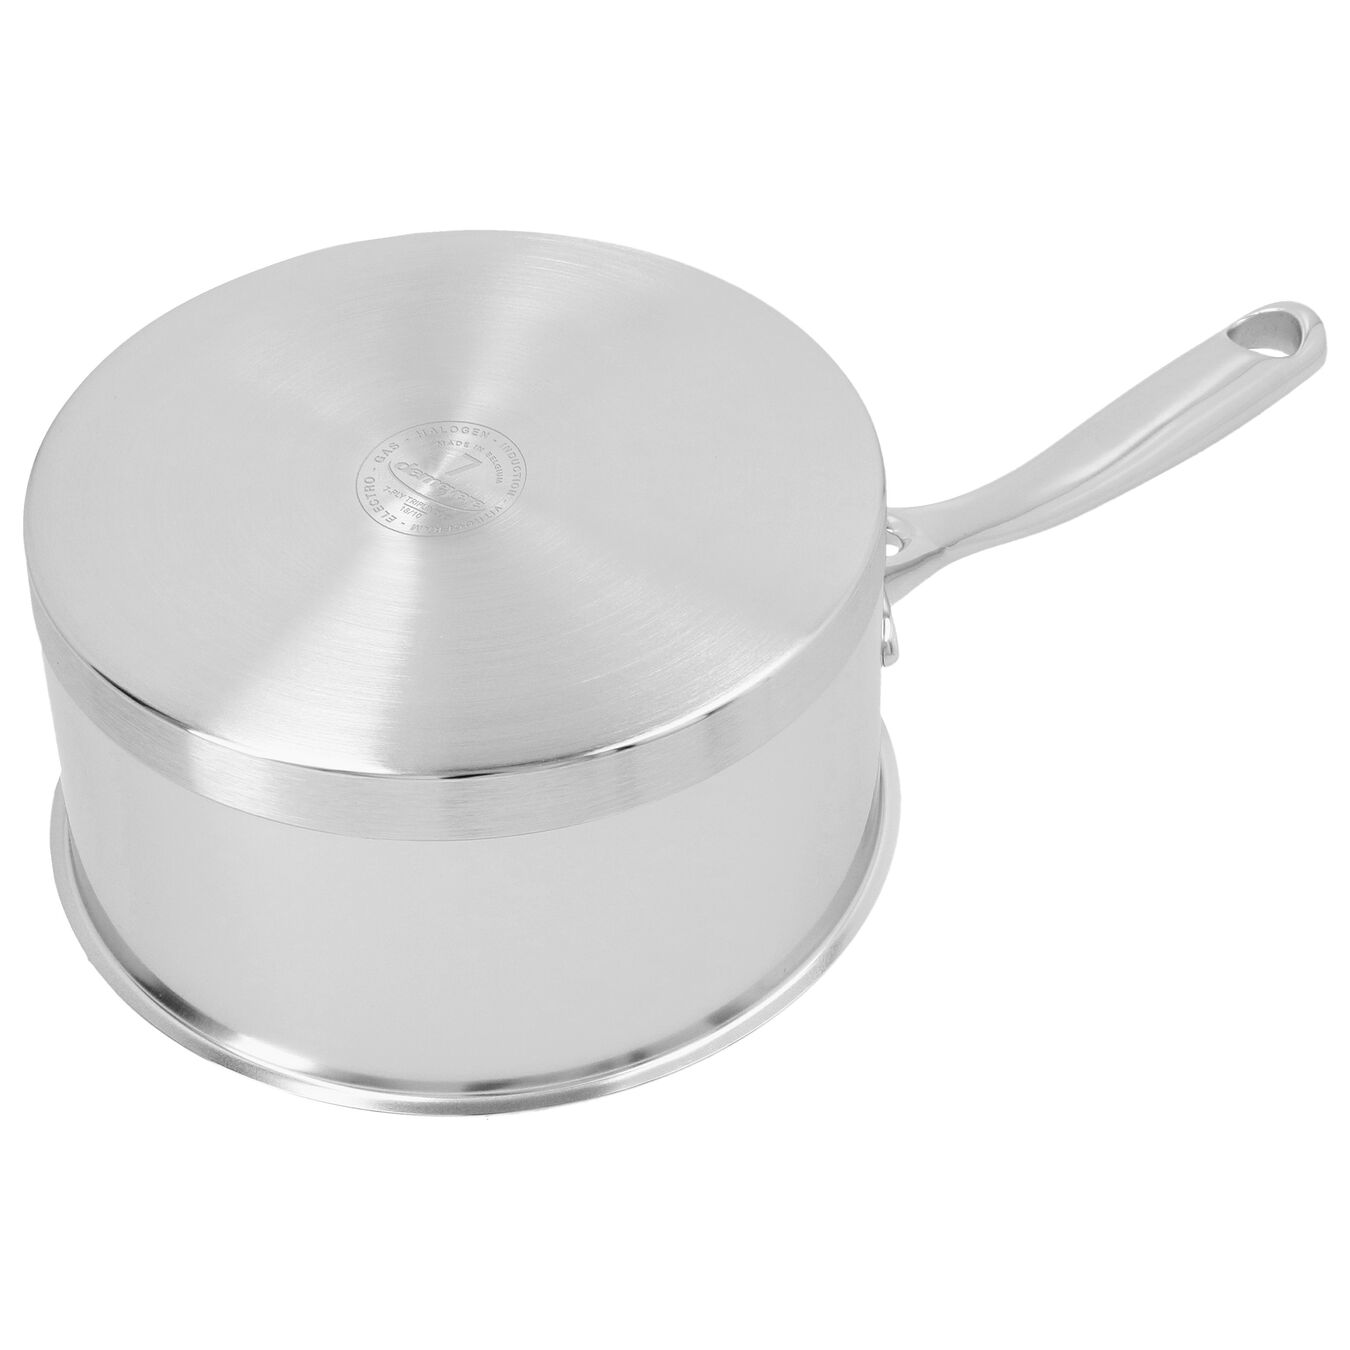 1.5 l round Sauce pan with lid, silver,,large 4